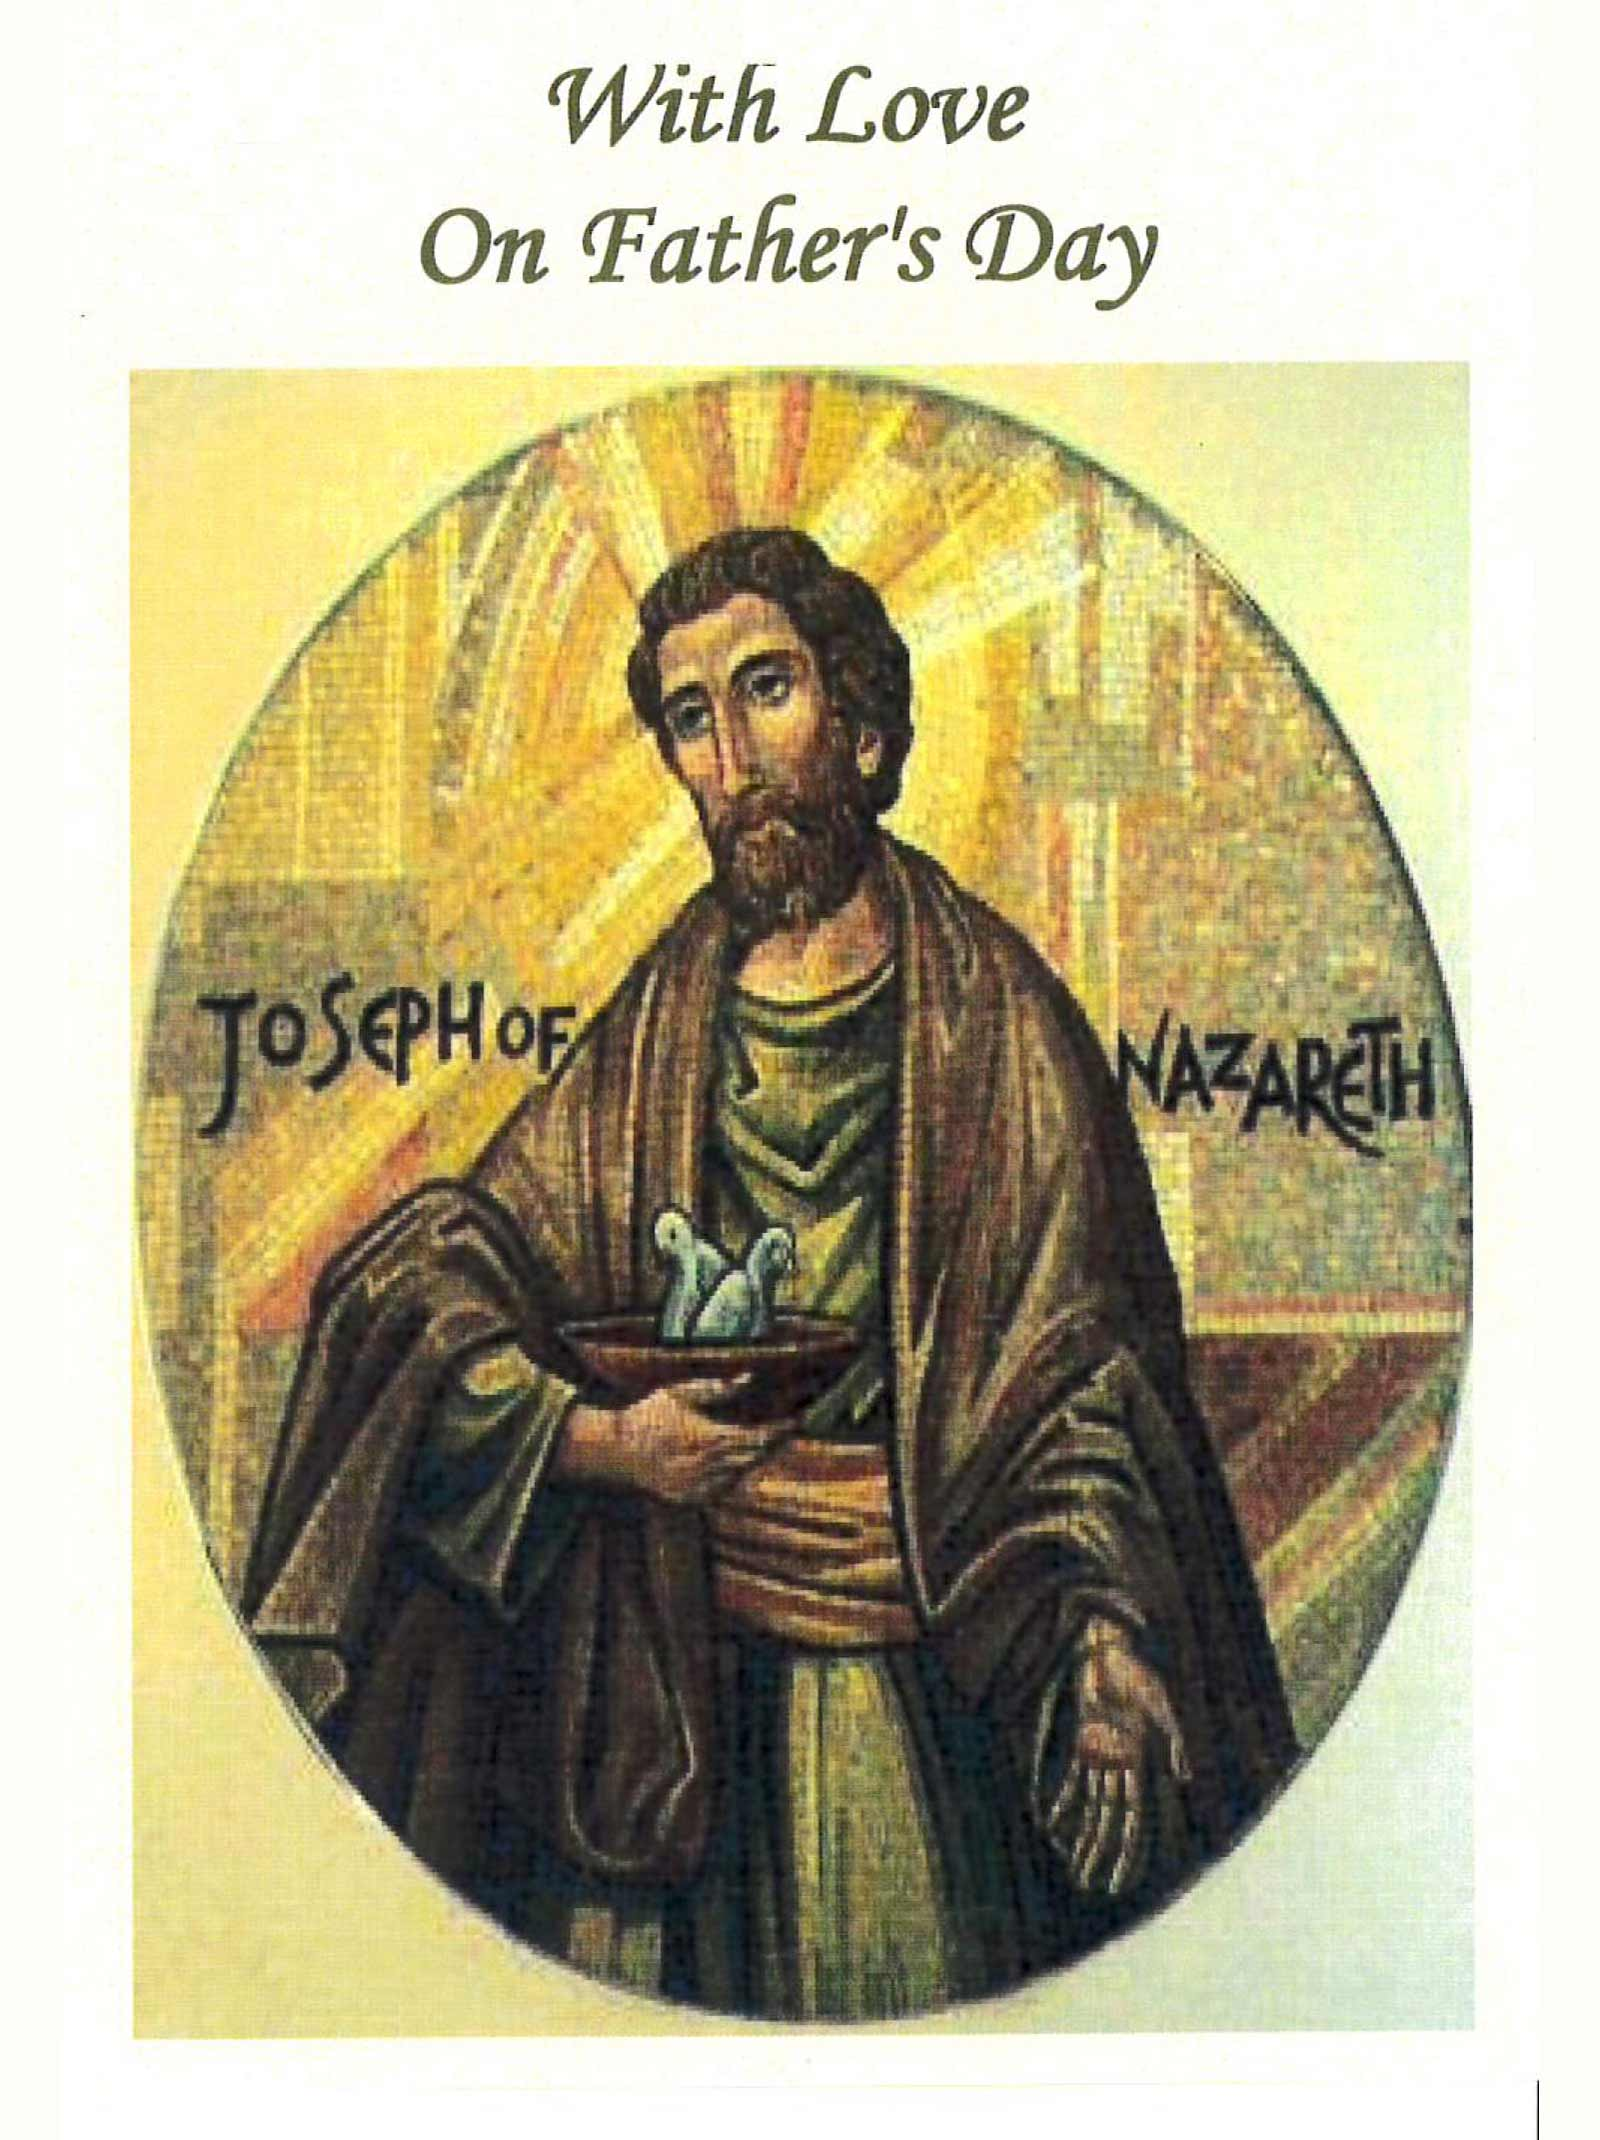 WITH LOVE ON FATHER'S DAY   Suggested donation: $10.00    This Mass card offers love and blessings to fathers on their special day. Joseph of Nazareth by Father Richard G. Cannuli, O.S.A.